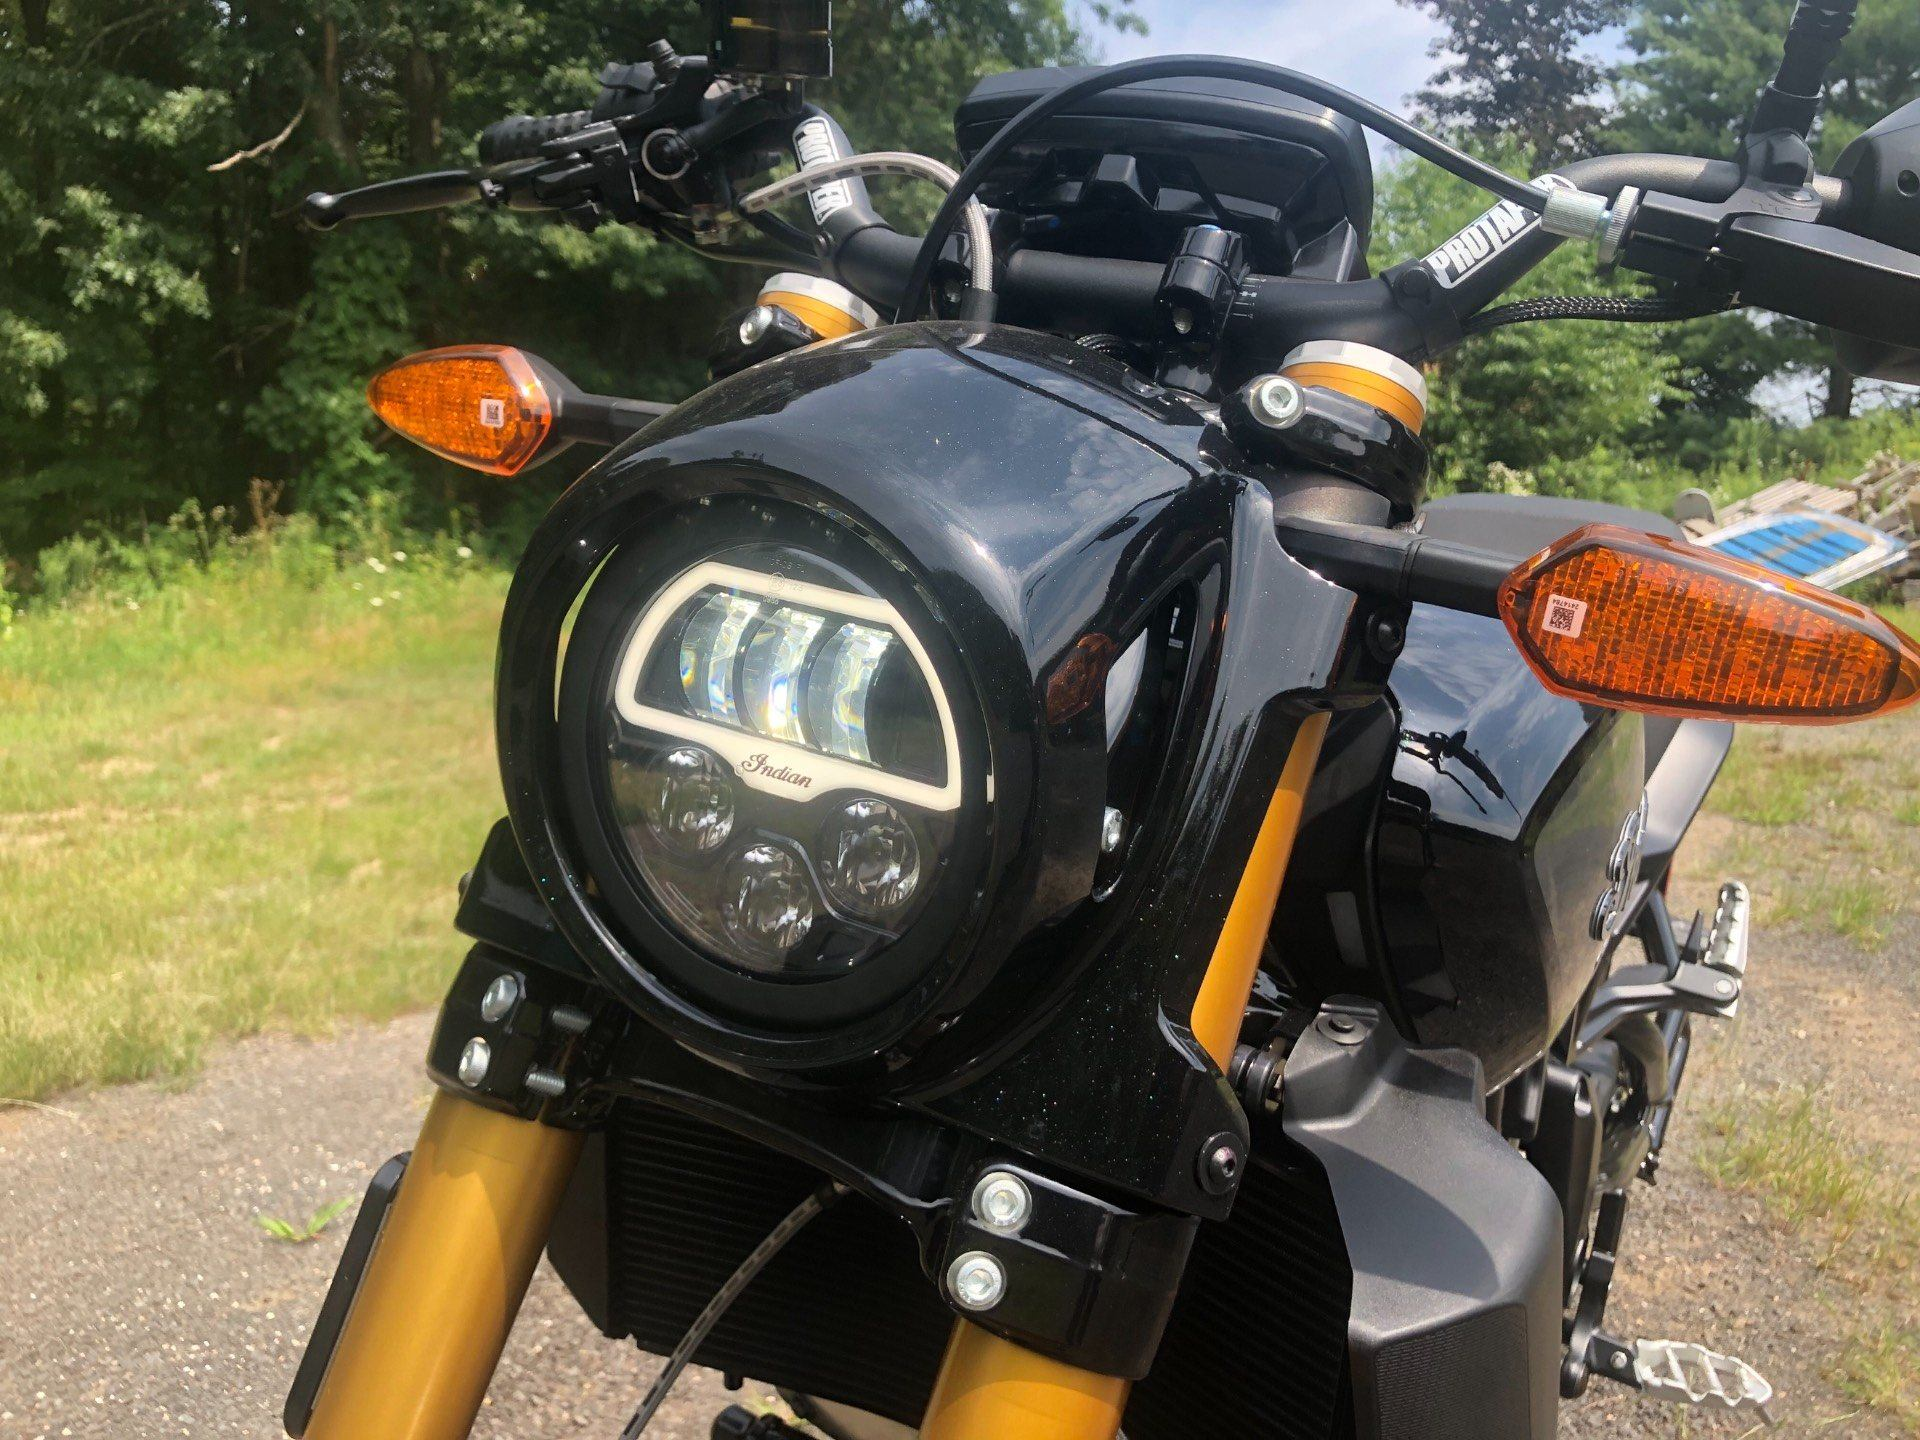 2019 Indian FTR™ 1200 S in Westfield, Massachusetts - Photo 9